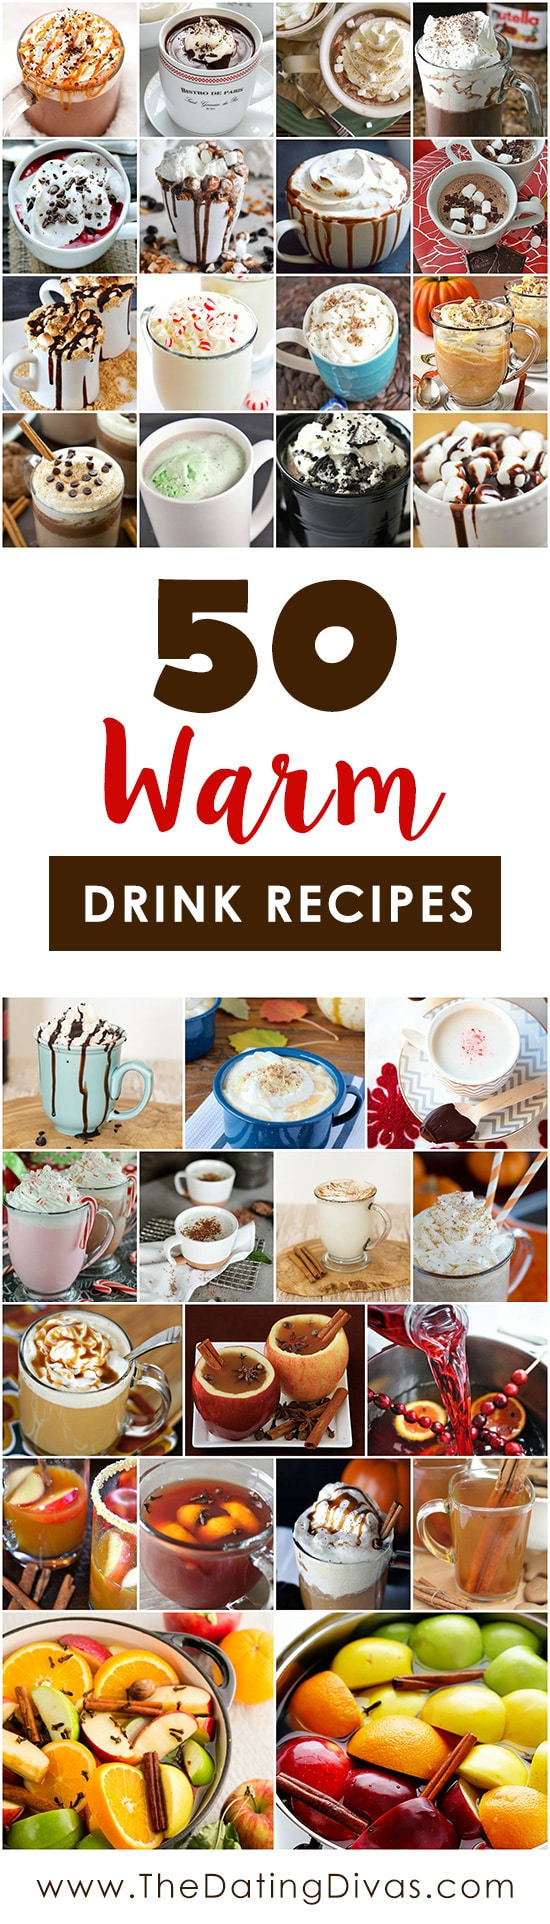 Delicious and Cozy Warm Drinks with Recipes for Fall and Winter